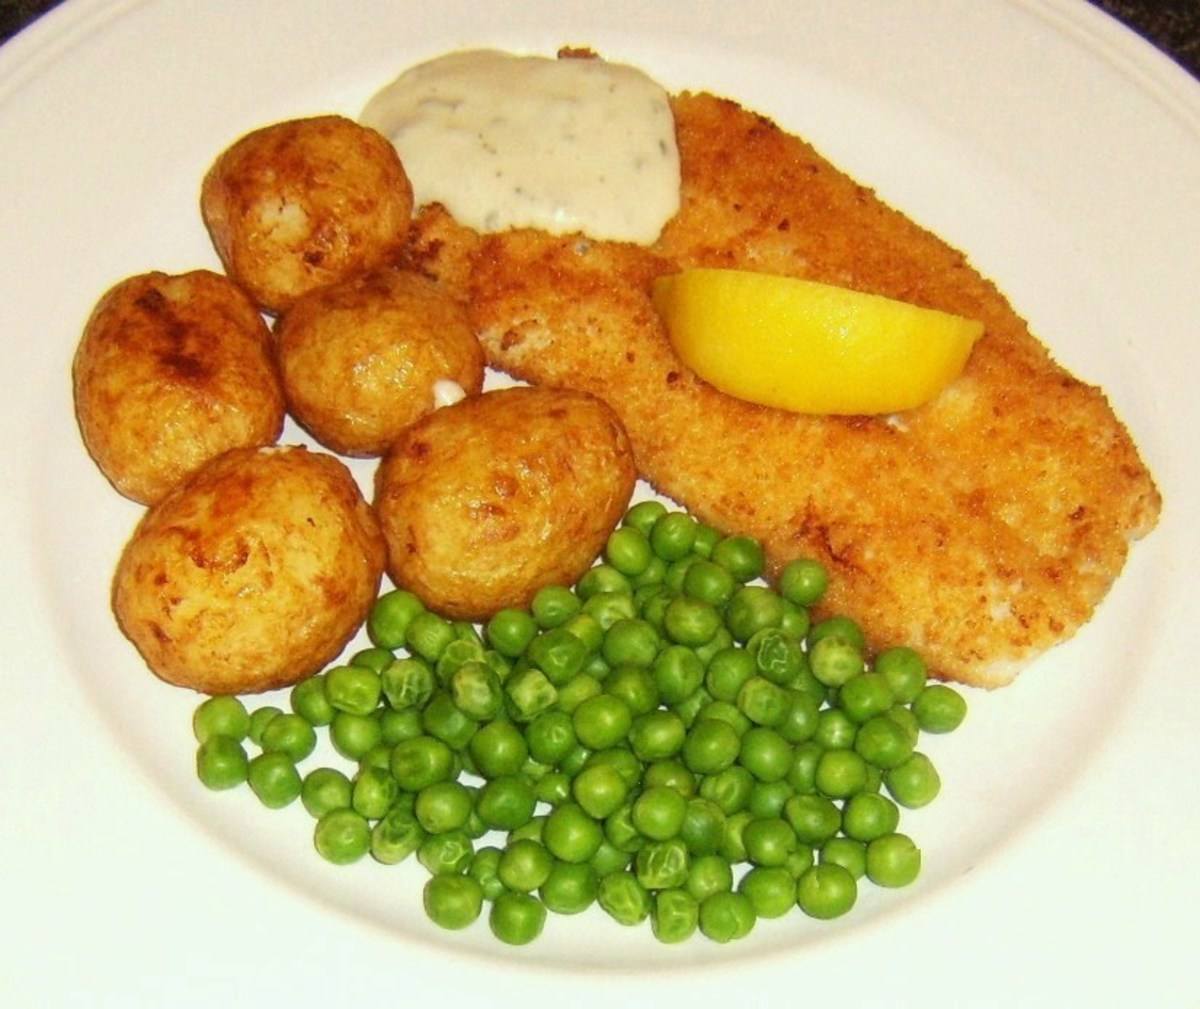 Breaded haddock fillet is shallow fried before being served with roast potatoes, peas and tartare sauce